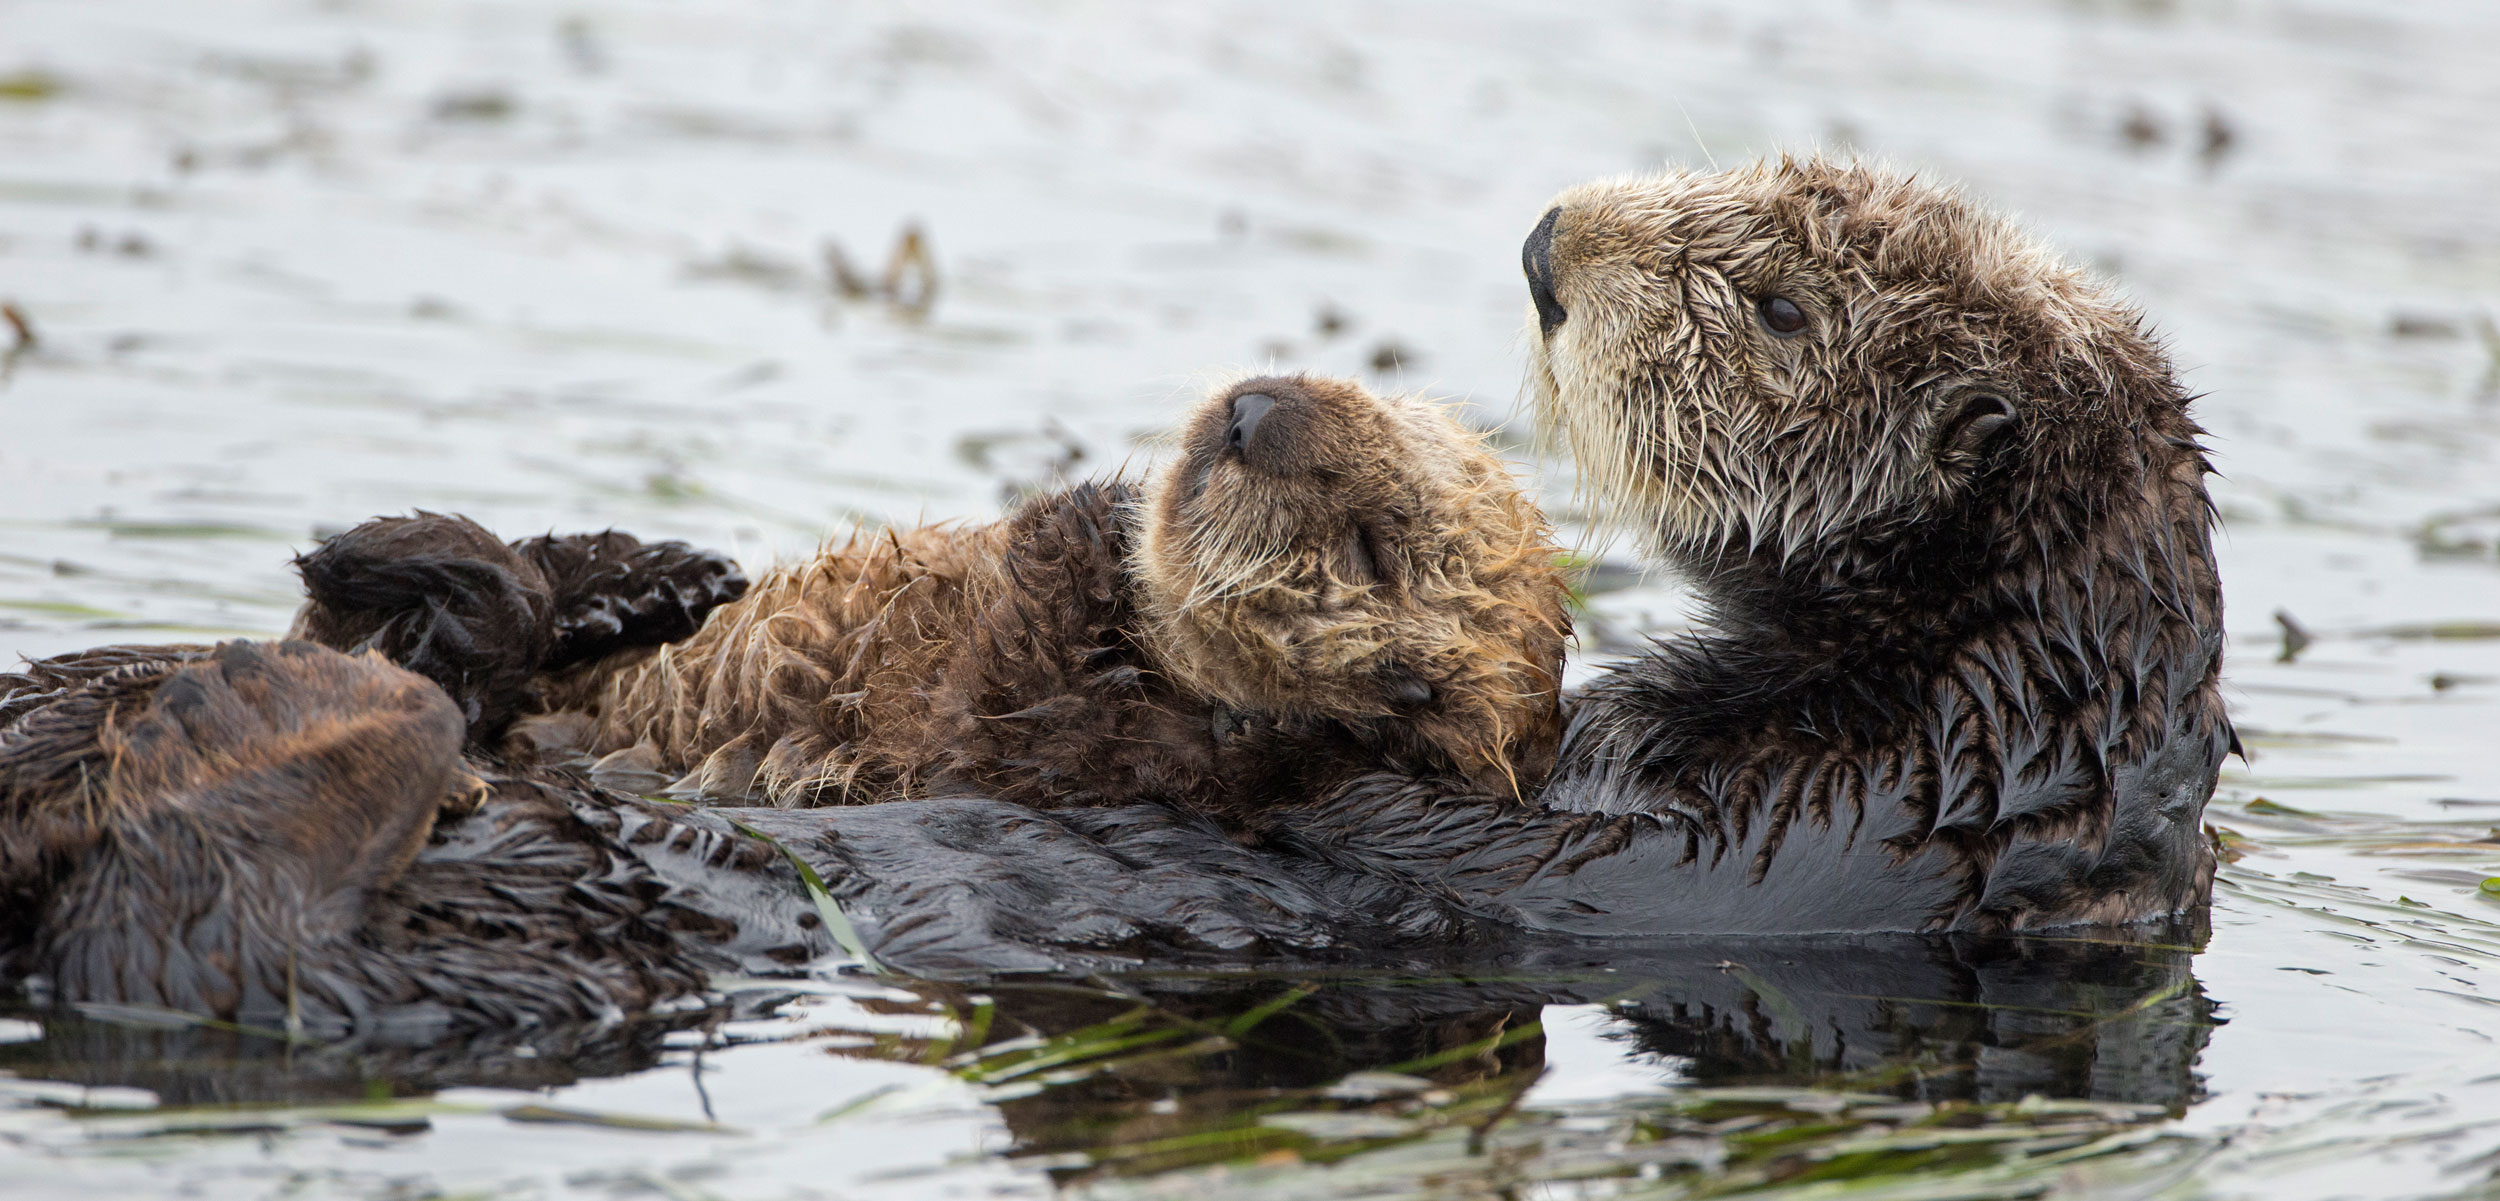 Otter Bones Provide a Clue to an Enduring Conservation Mystery